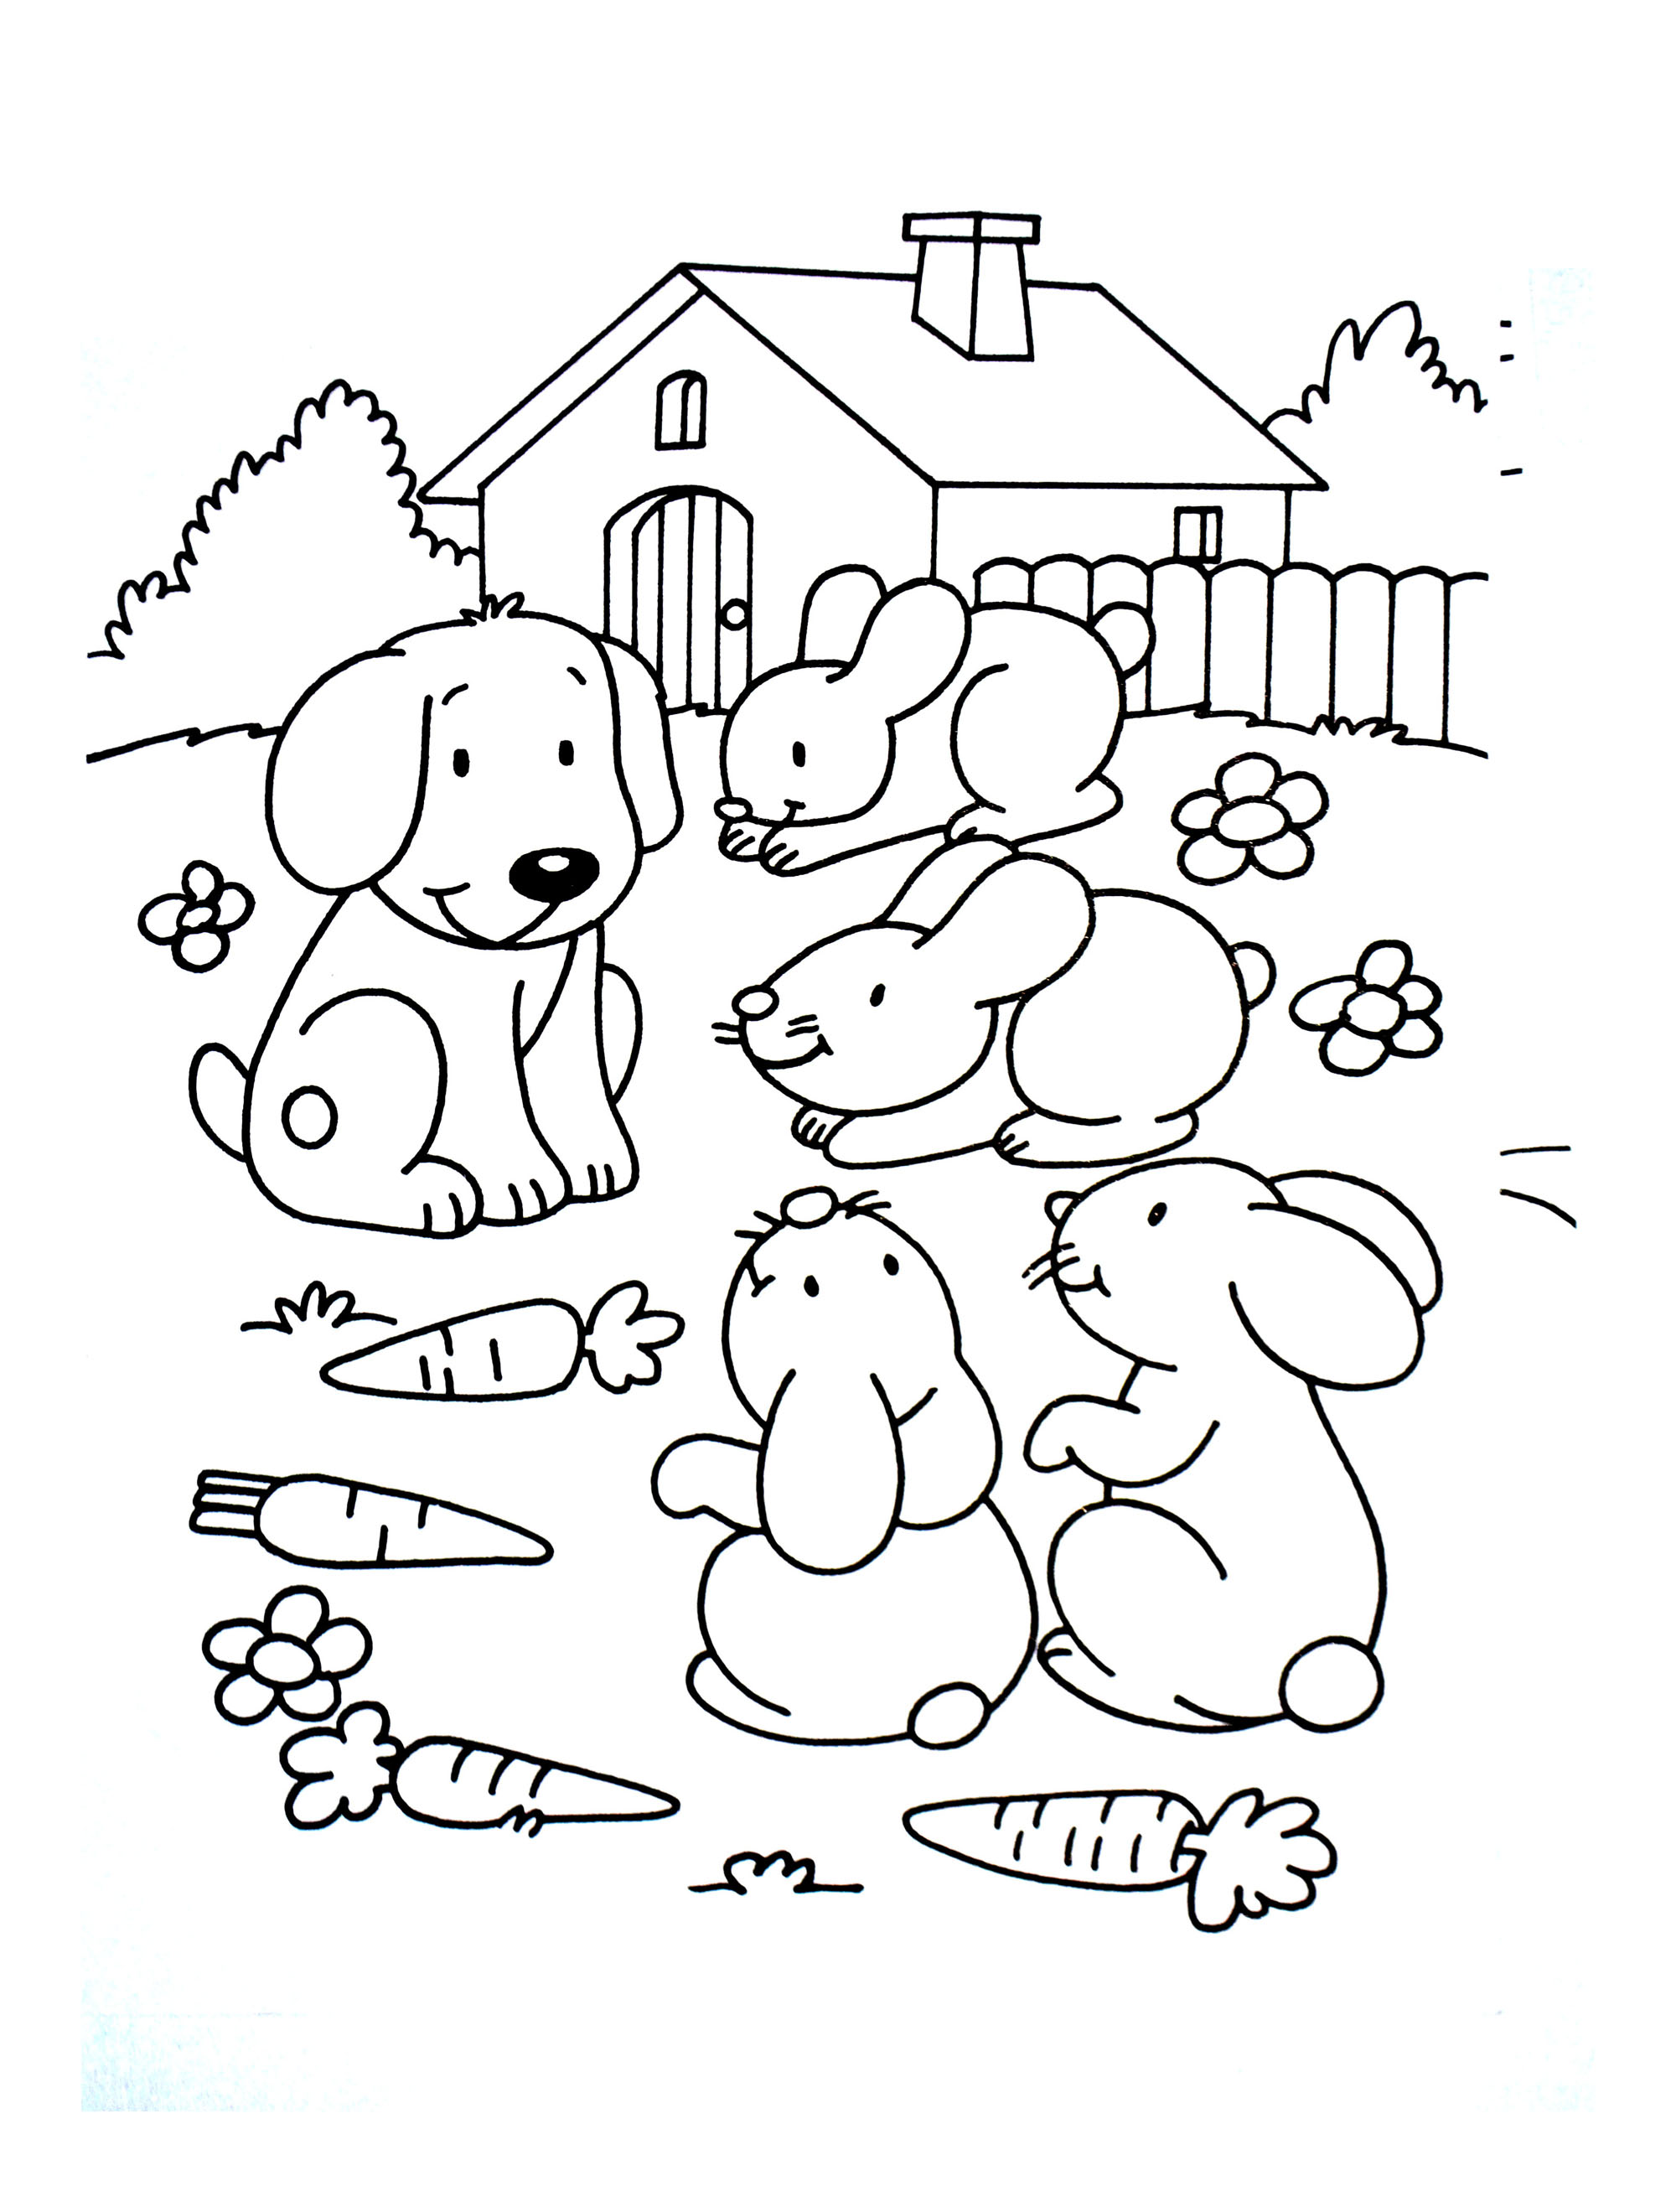 Dog with rabbit friends - Animal Coloring pages for kids to print ...